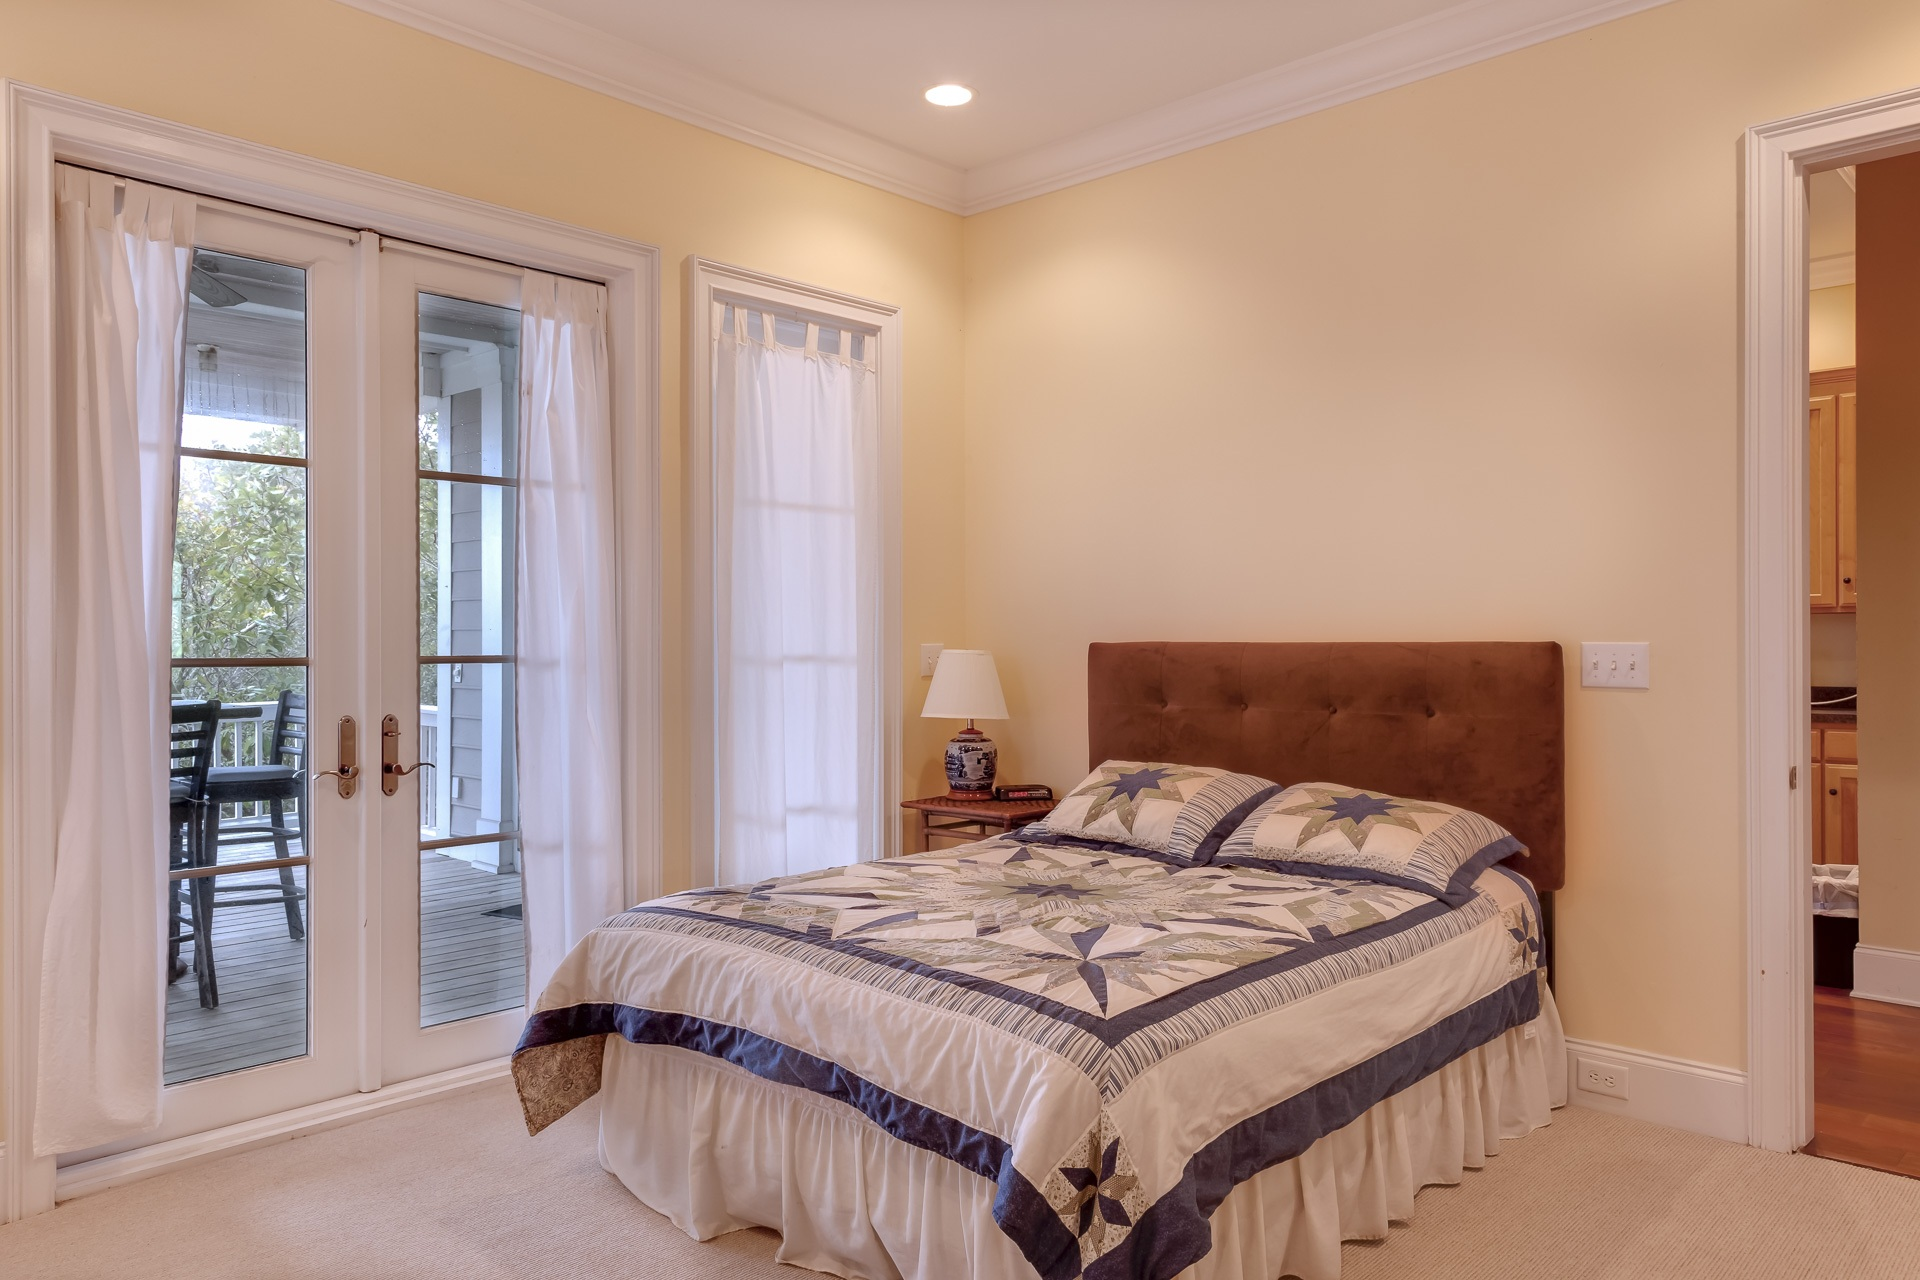 Beige bedroom with large bed and closed doors to the patio